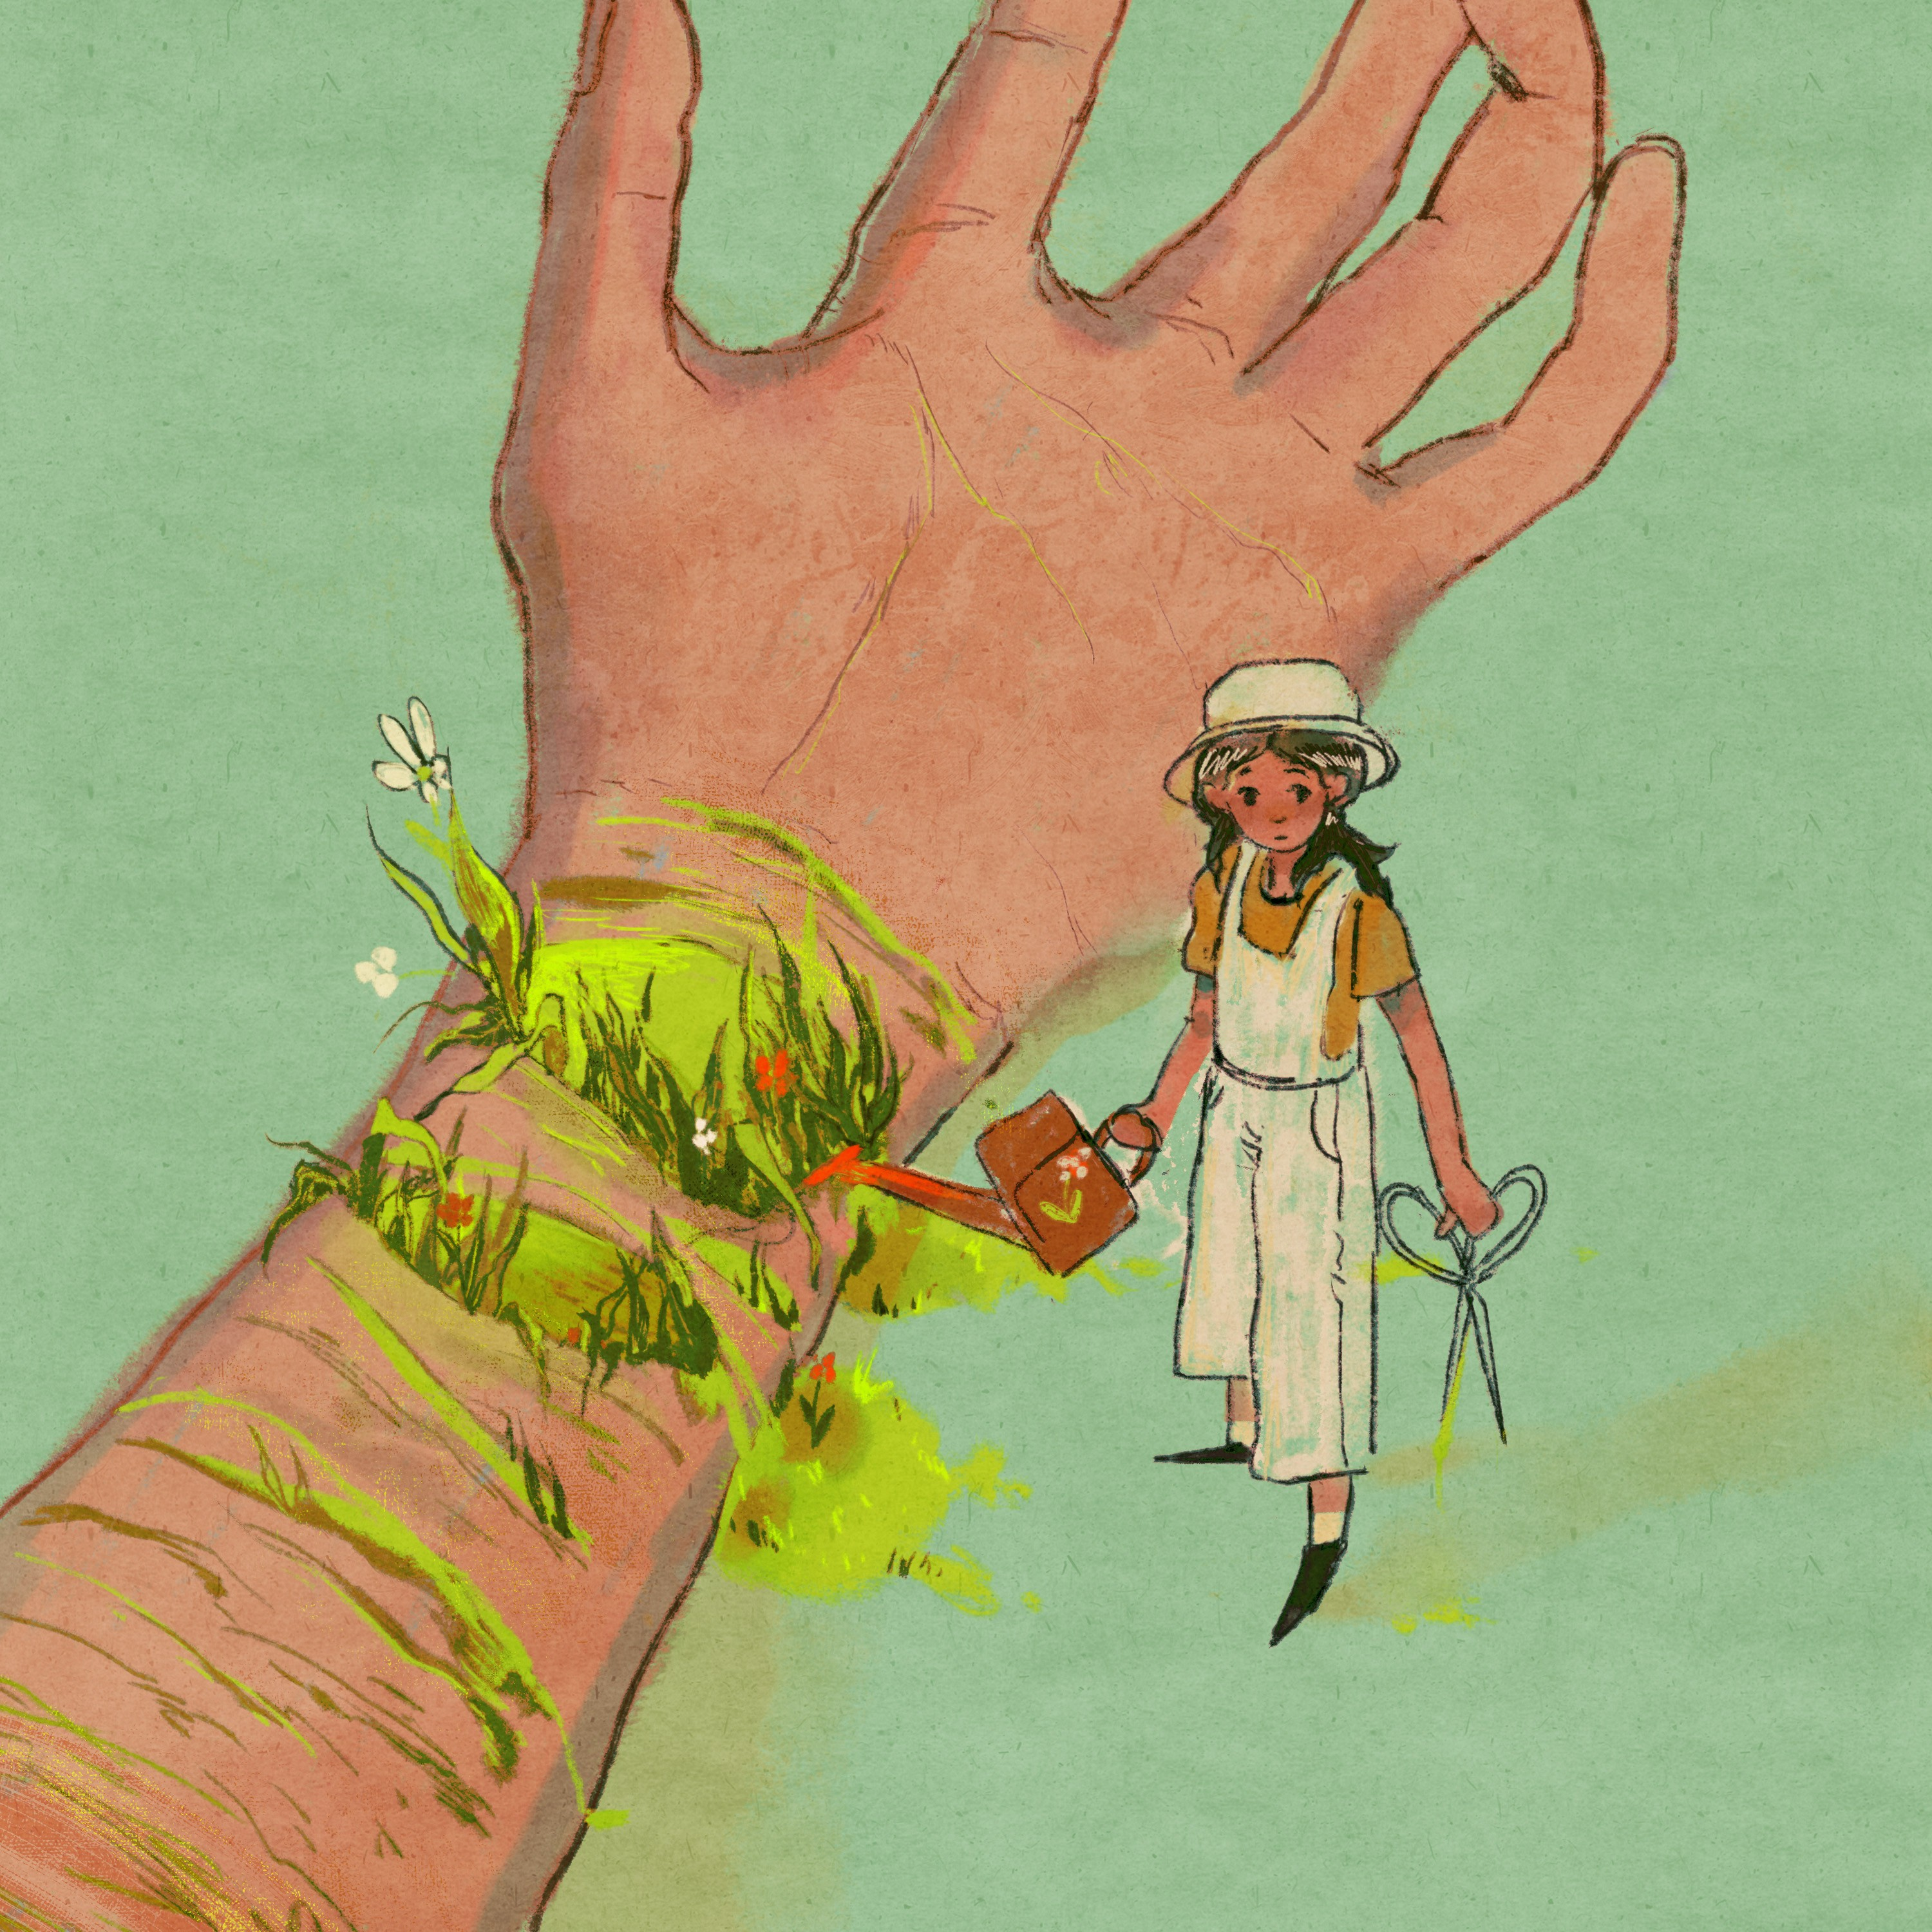 Grass and flowers grow out of a cut wrist, a girl figure with scissors in her hand is watering them